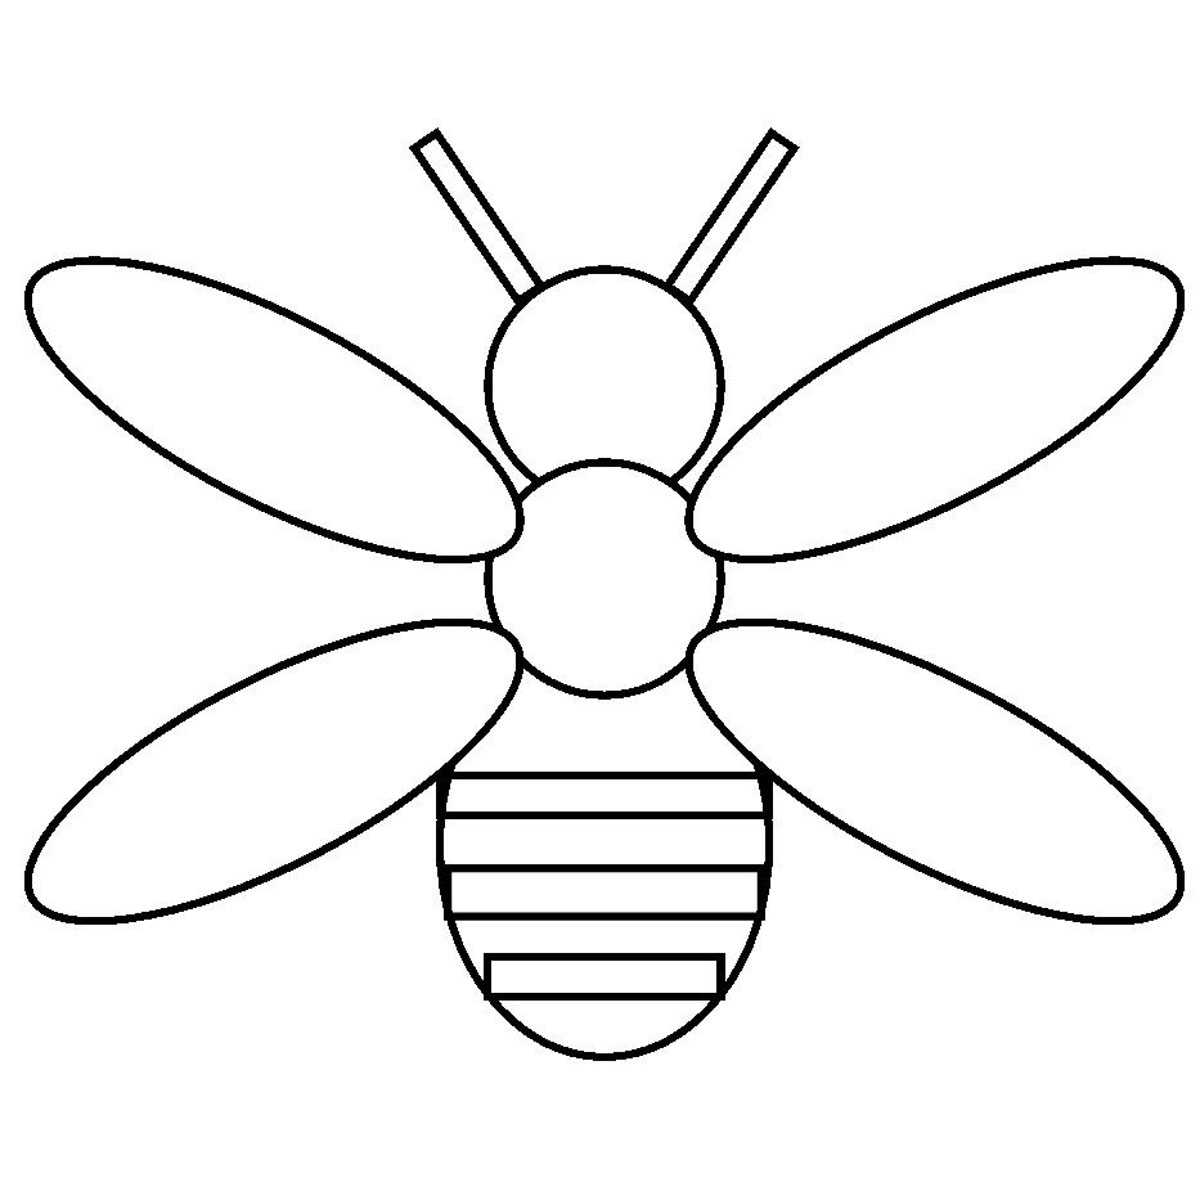 Free Bee Template Download Free Clip Art Free Clip Art On Clipart Library